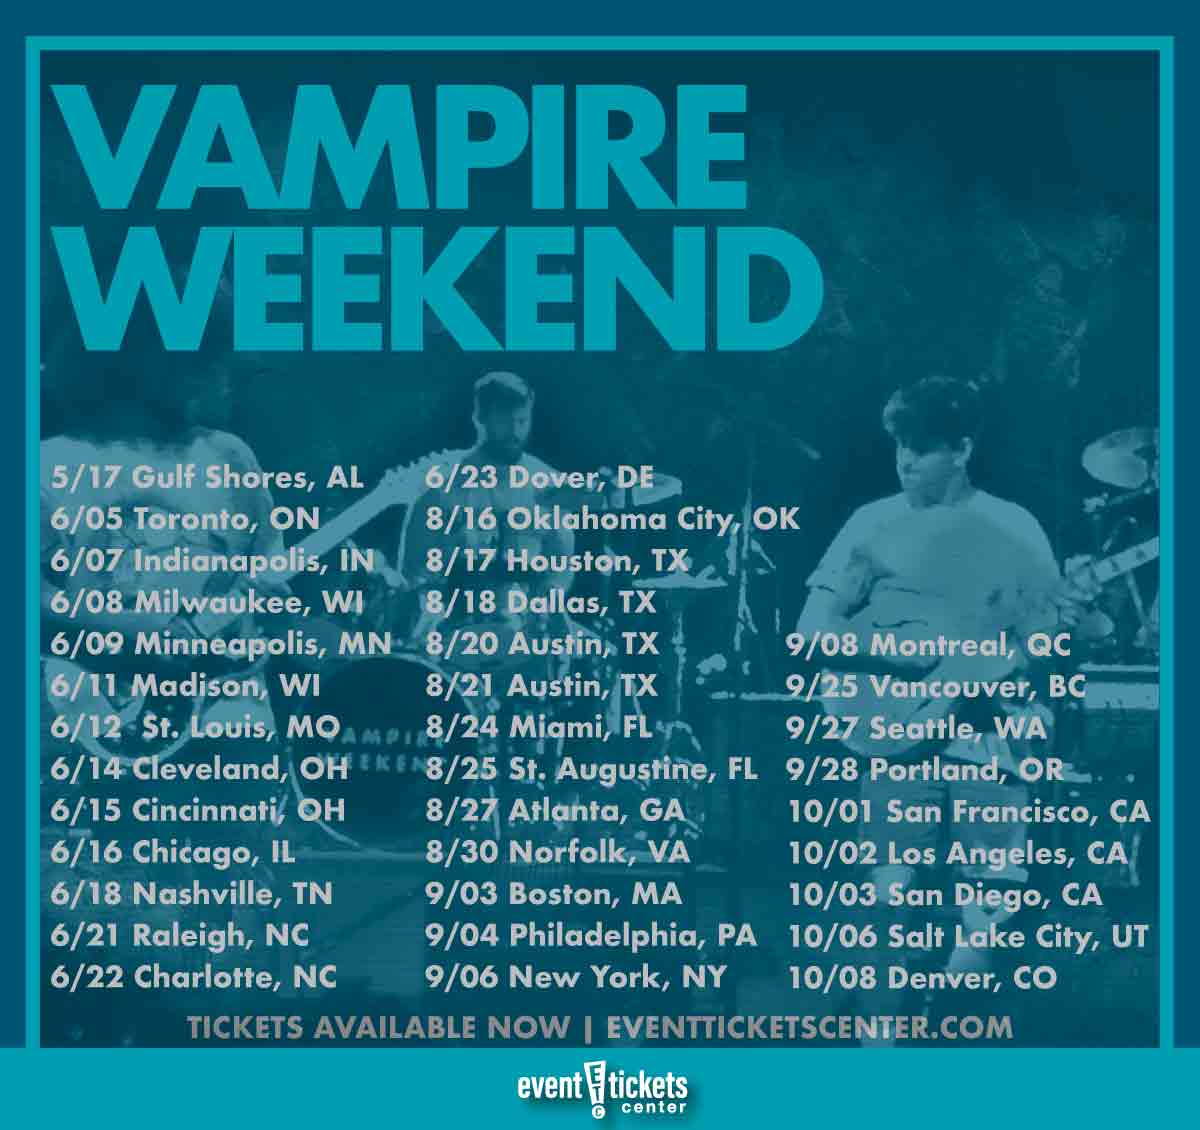 vampire weekend tour dates